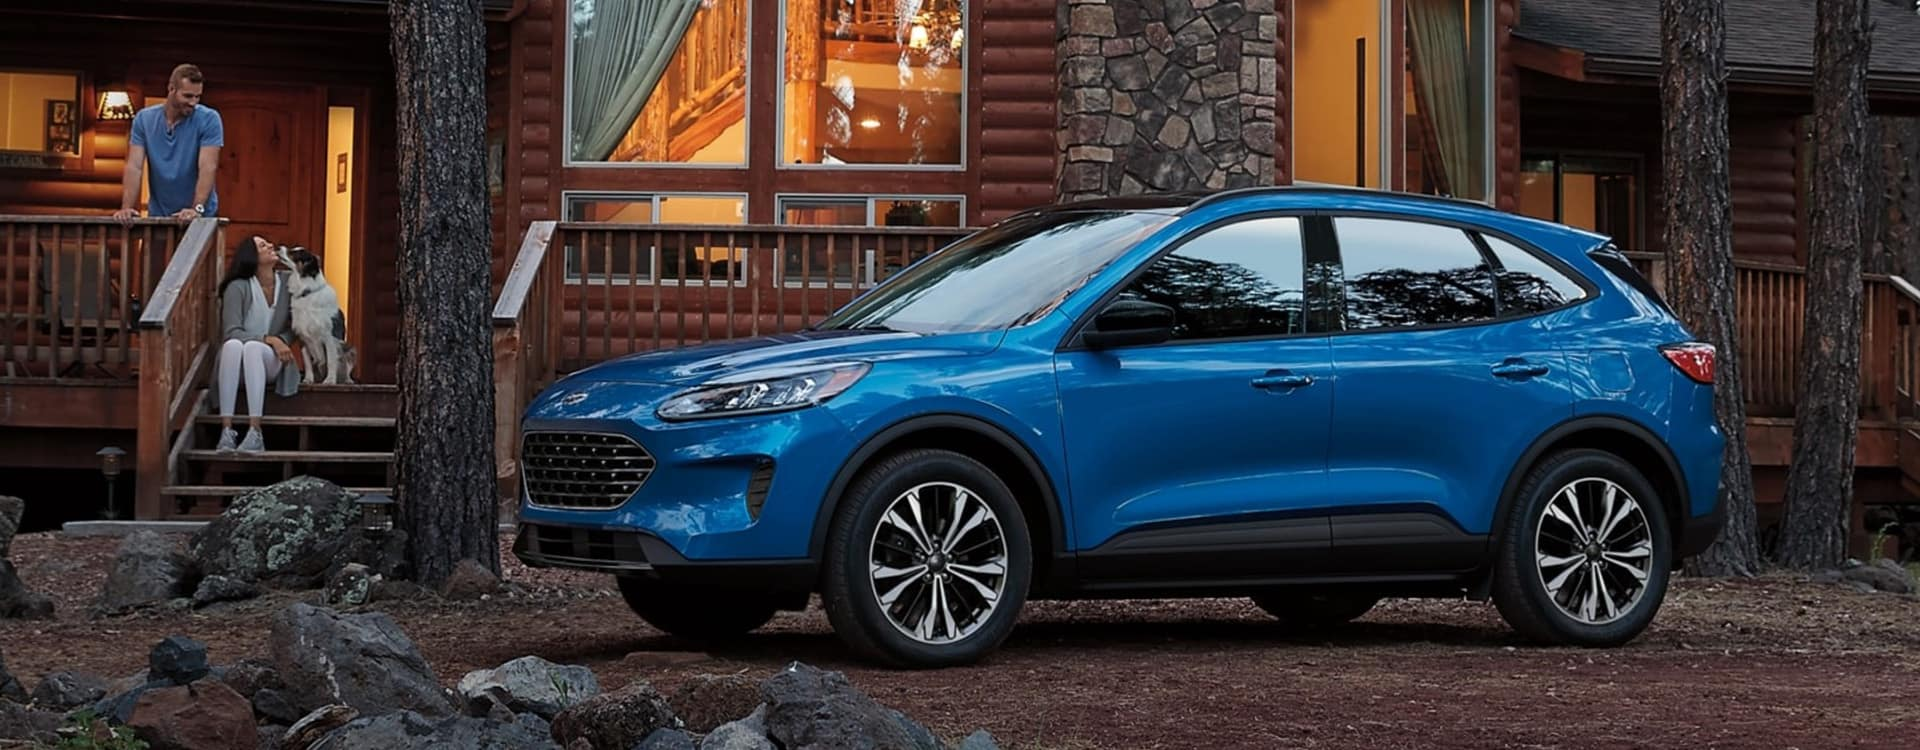 2021 Ford Escape near St. Louis